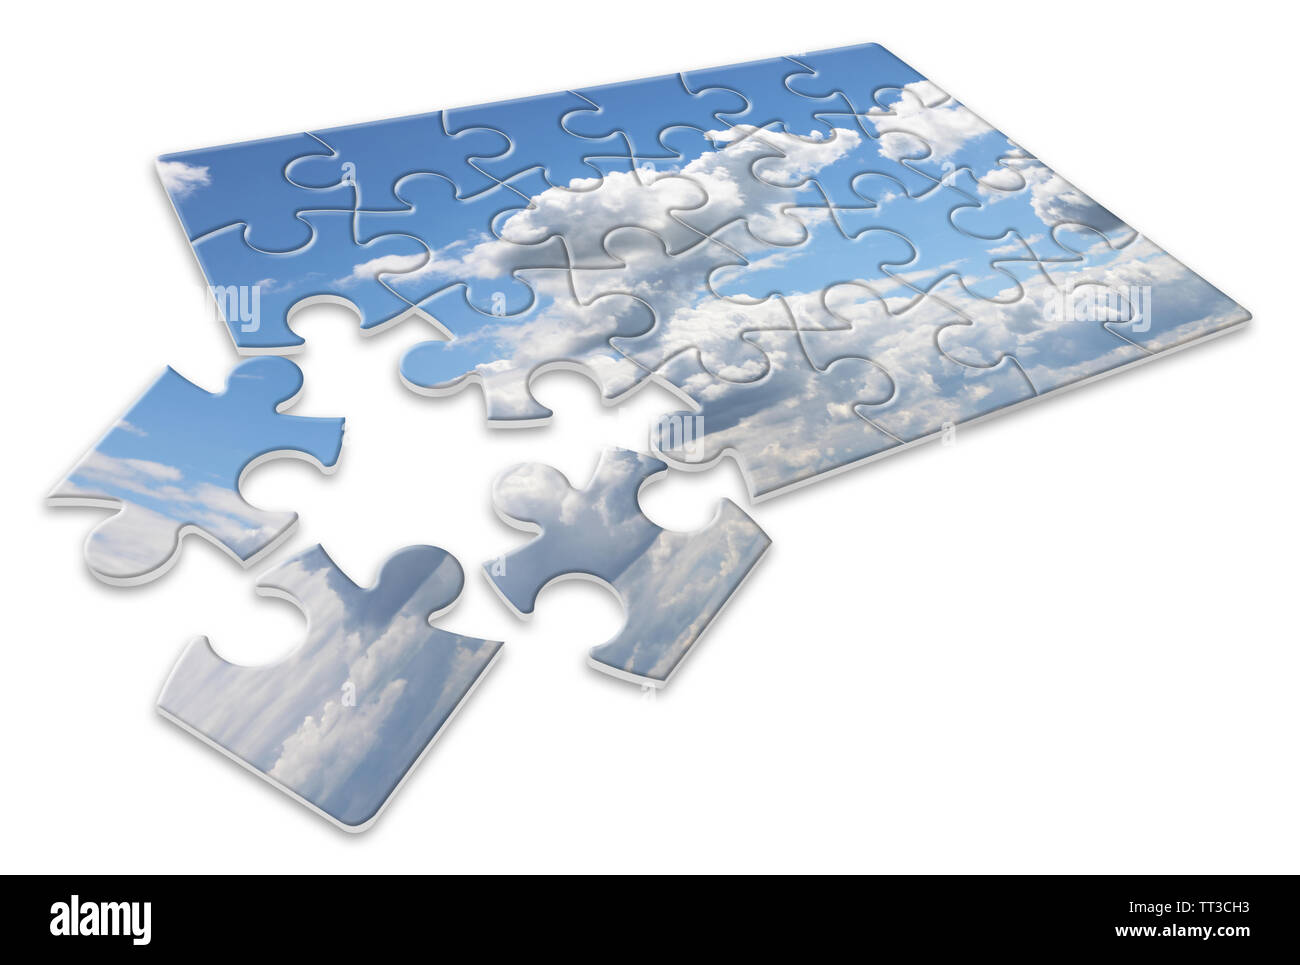 Climate changes; concept image with a cloudy sky in puzzle shape - Stock Image